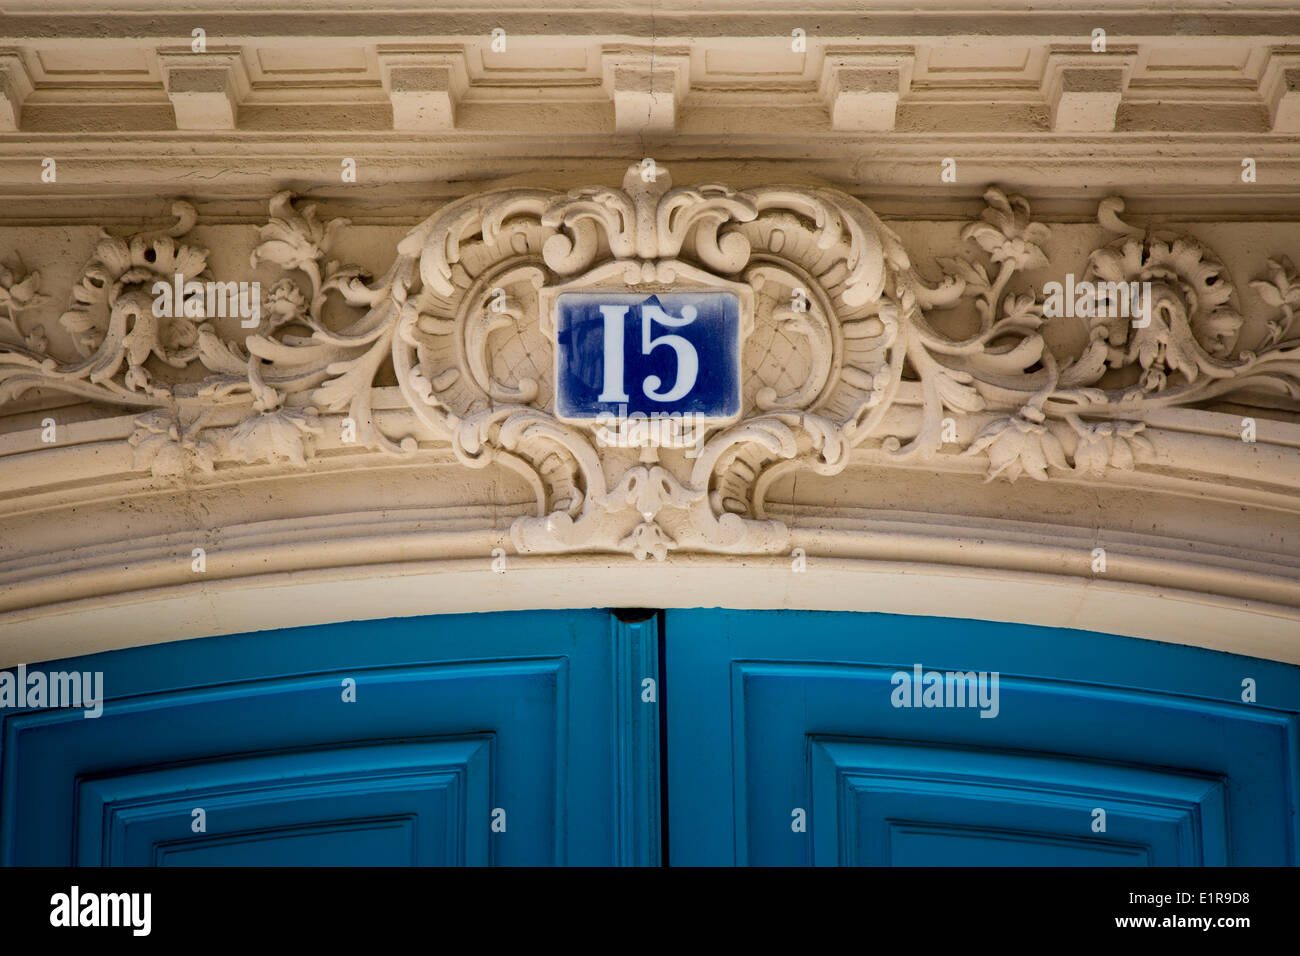 Address number above front door to home, Paris France Stock Photo